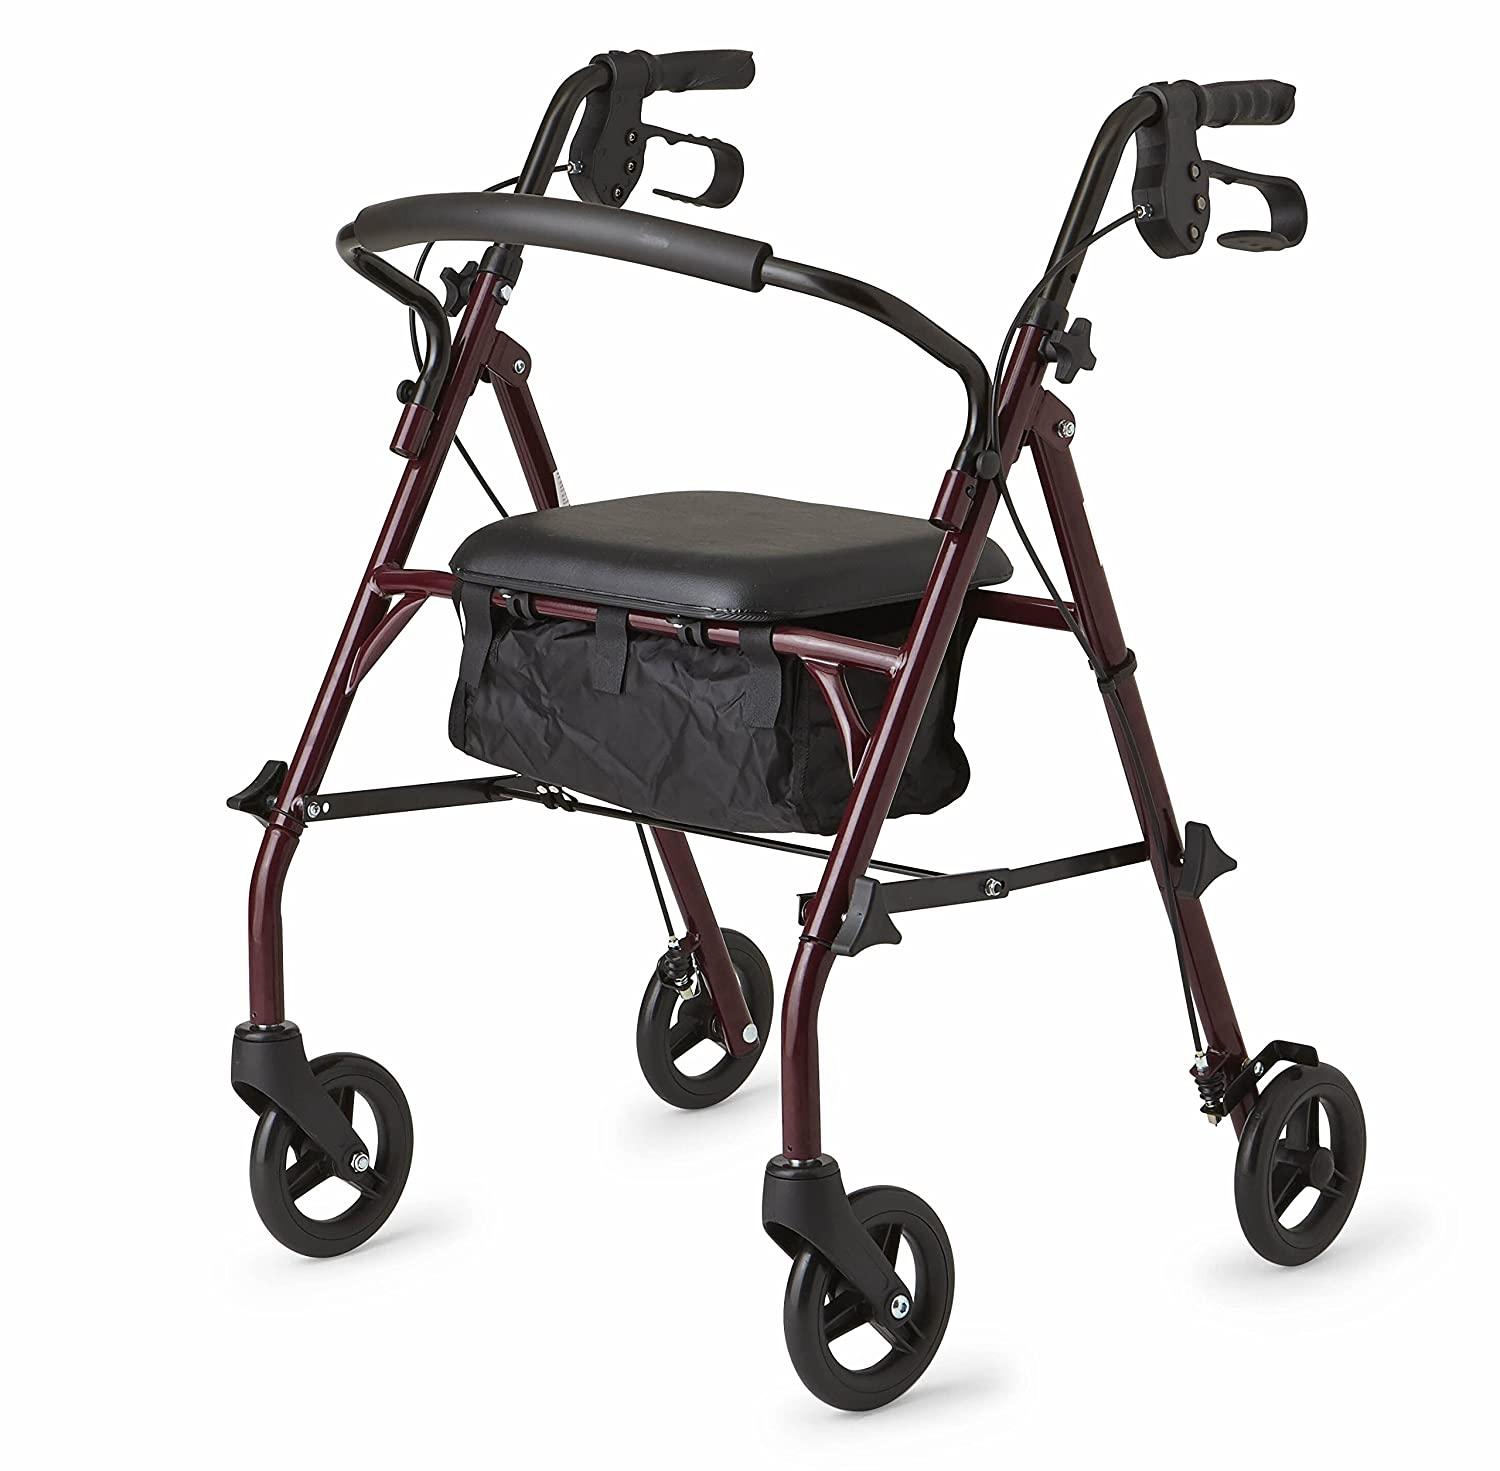 Healthcare Direct 100RA Steel Rollator Walker with 350 lb. Weight Capacity, Burgundy Medline